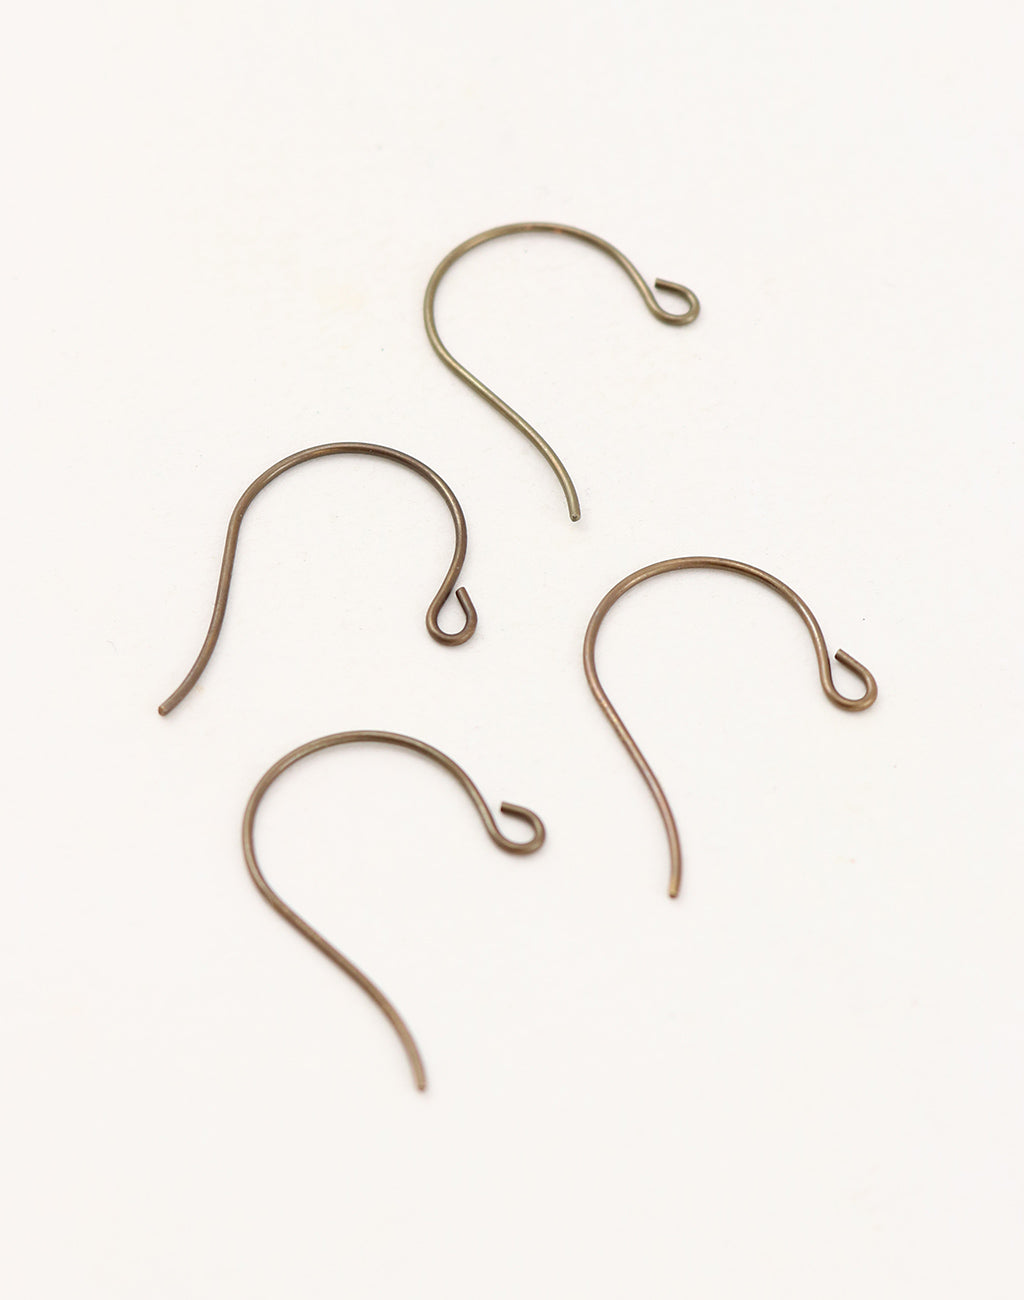 Round Loop Ear Wire, 27x15mm, (4pcs)